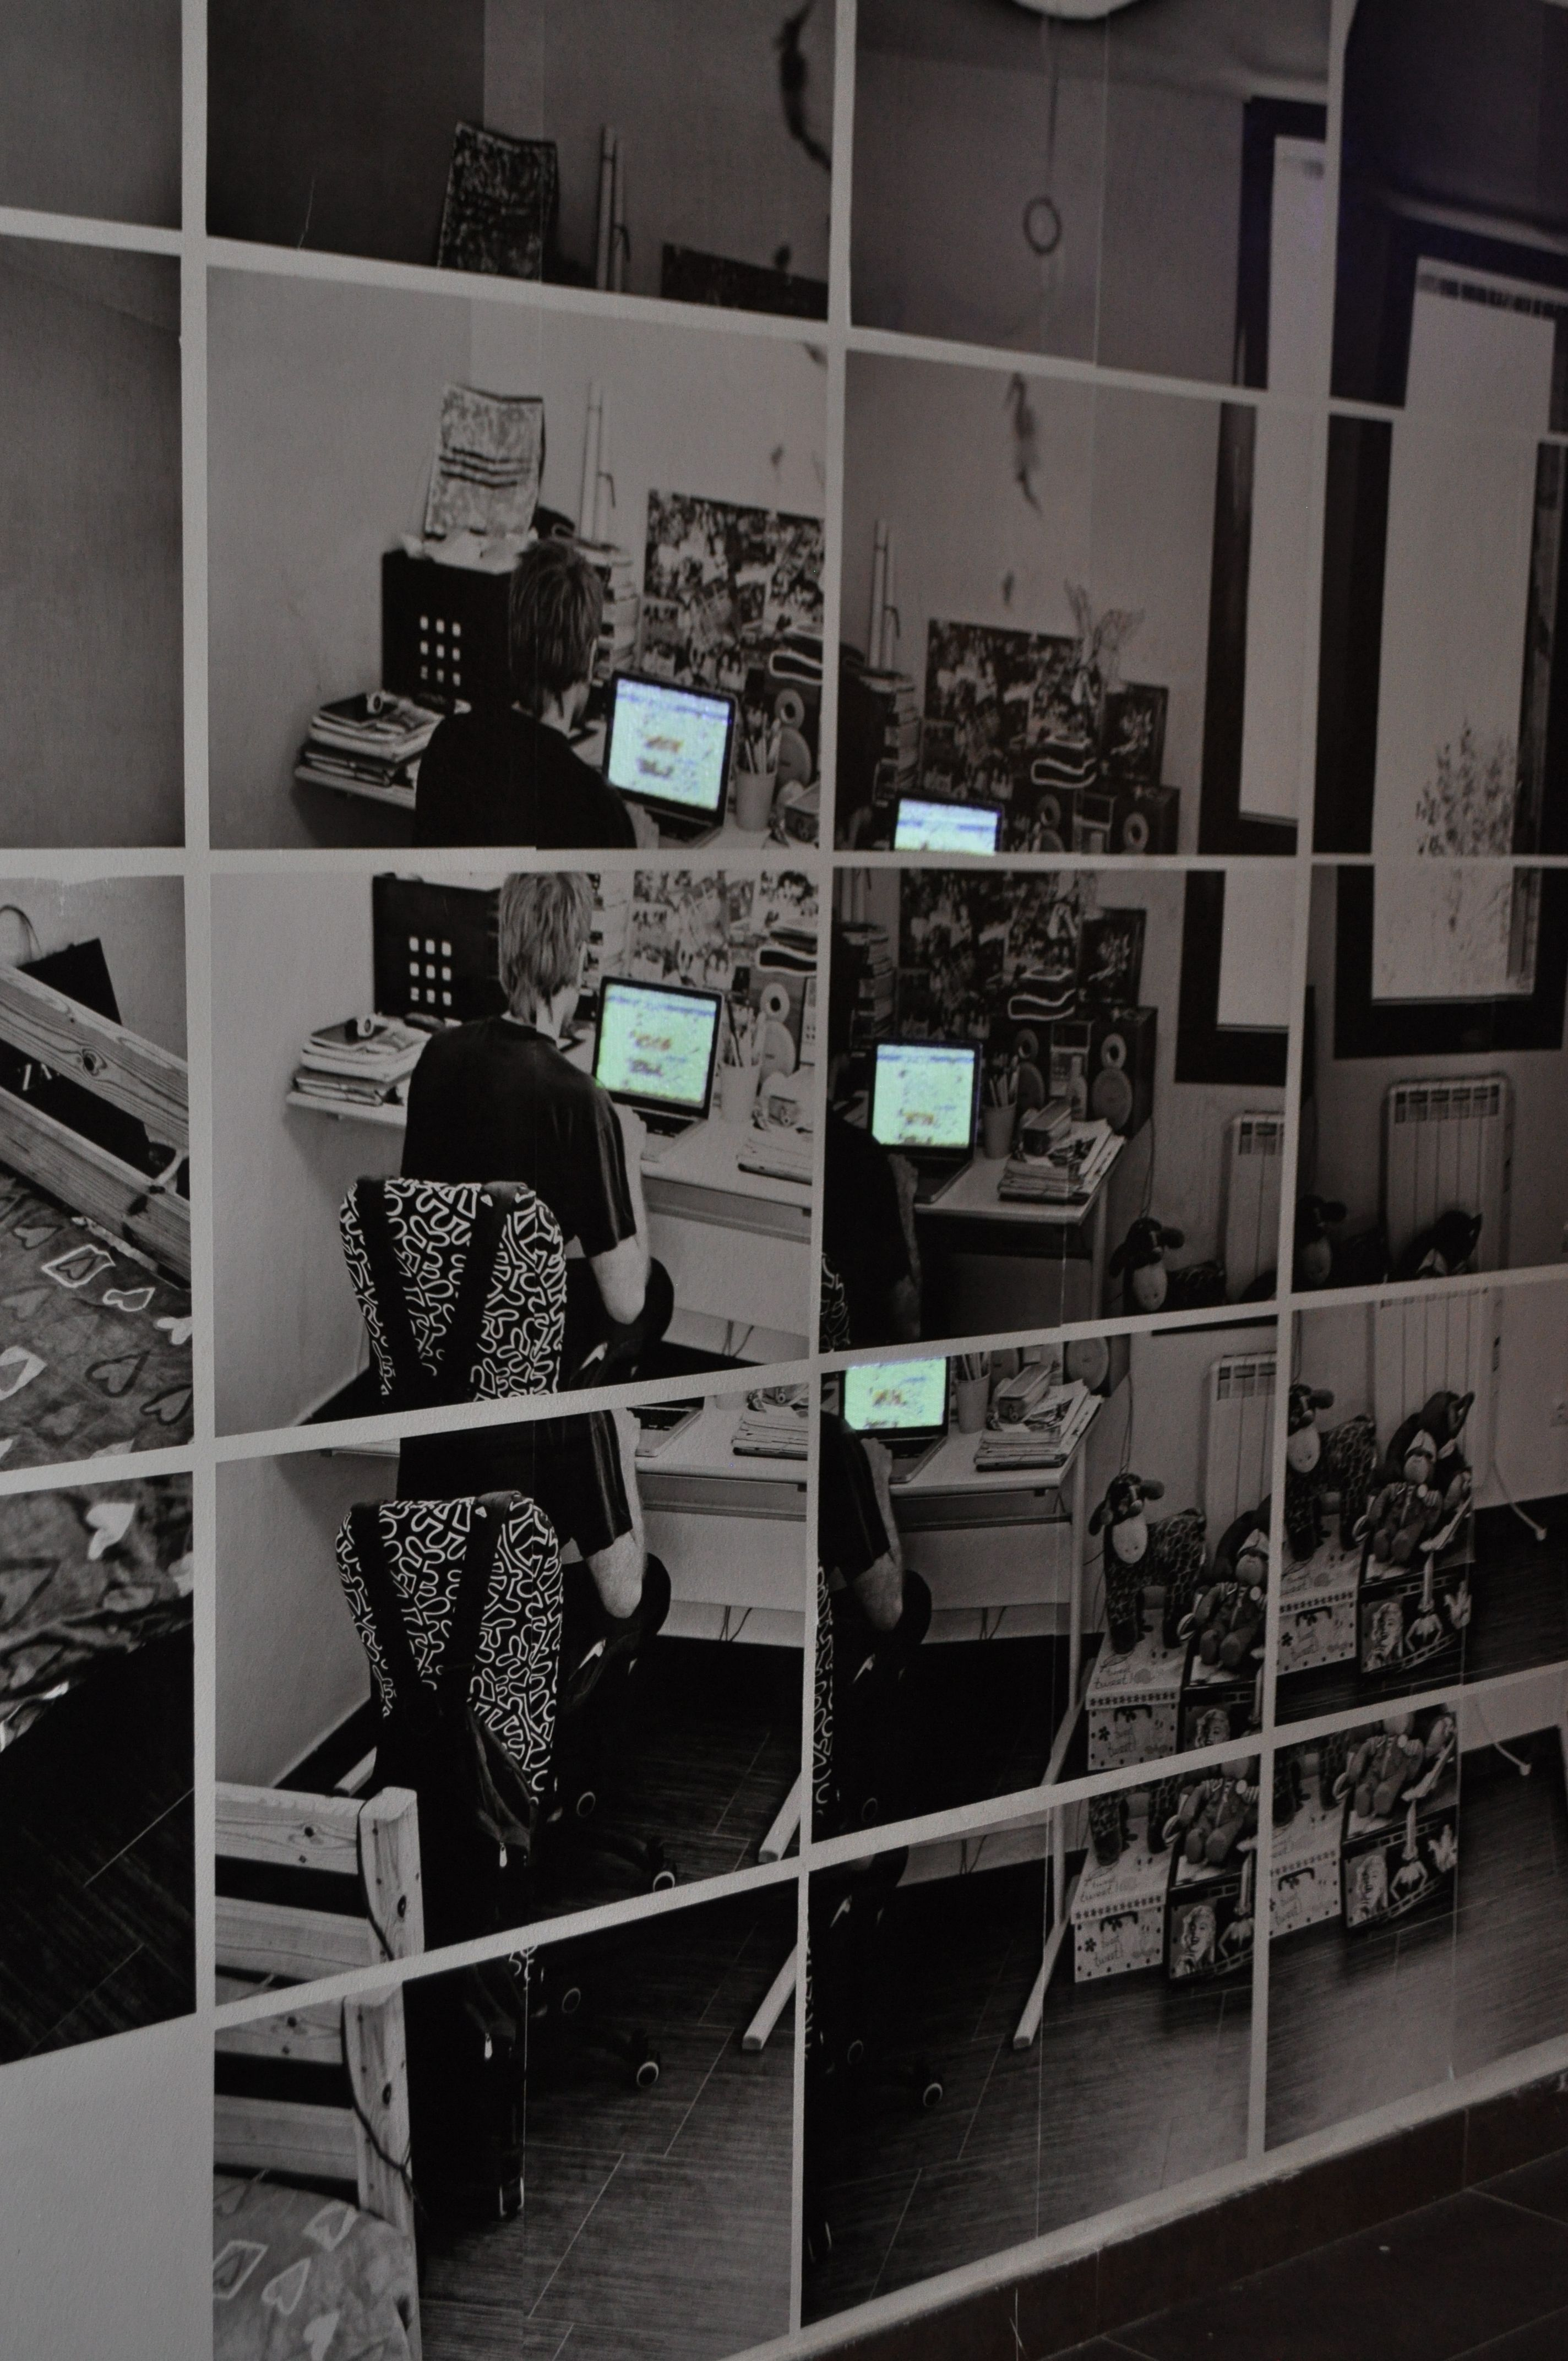 #bloopfestival computers changed their images